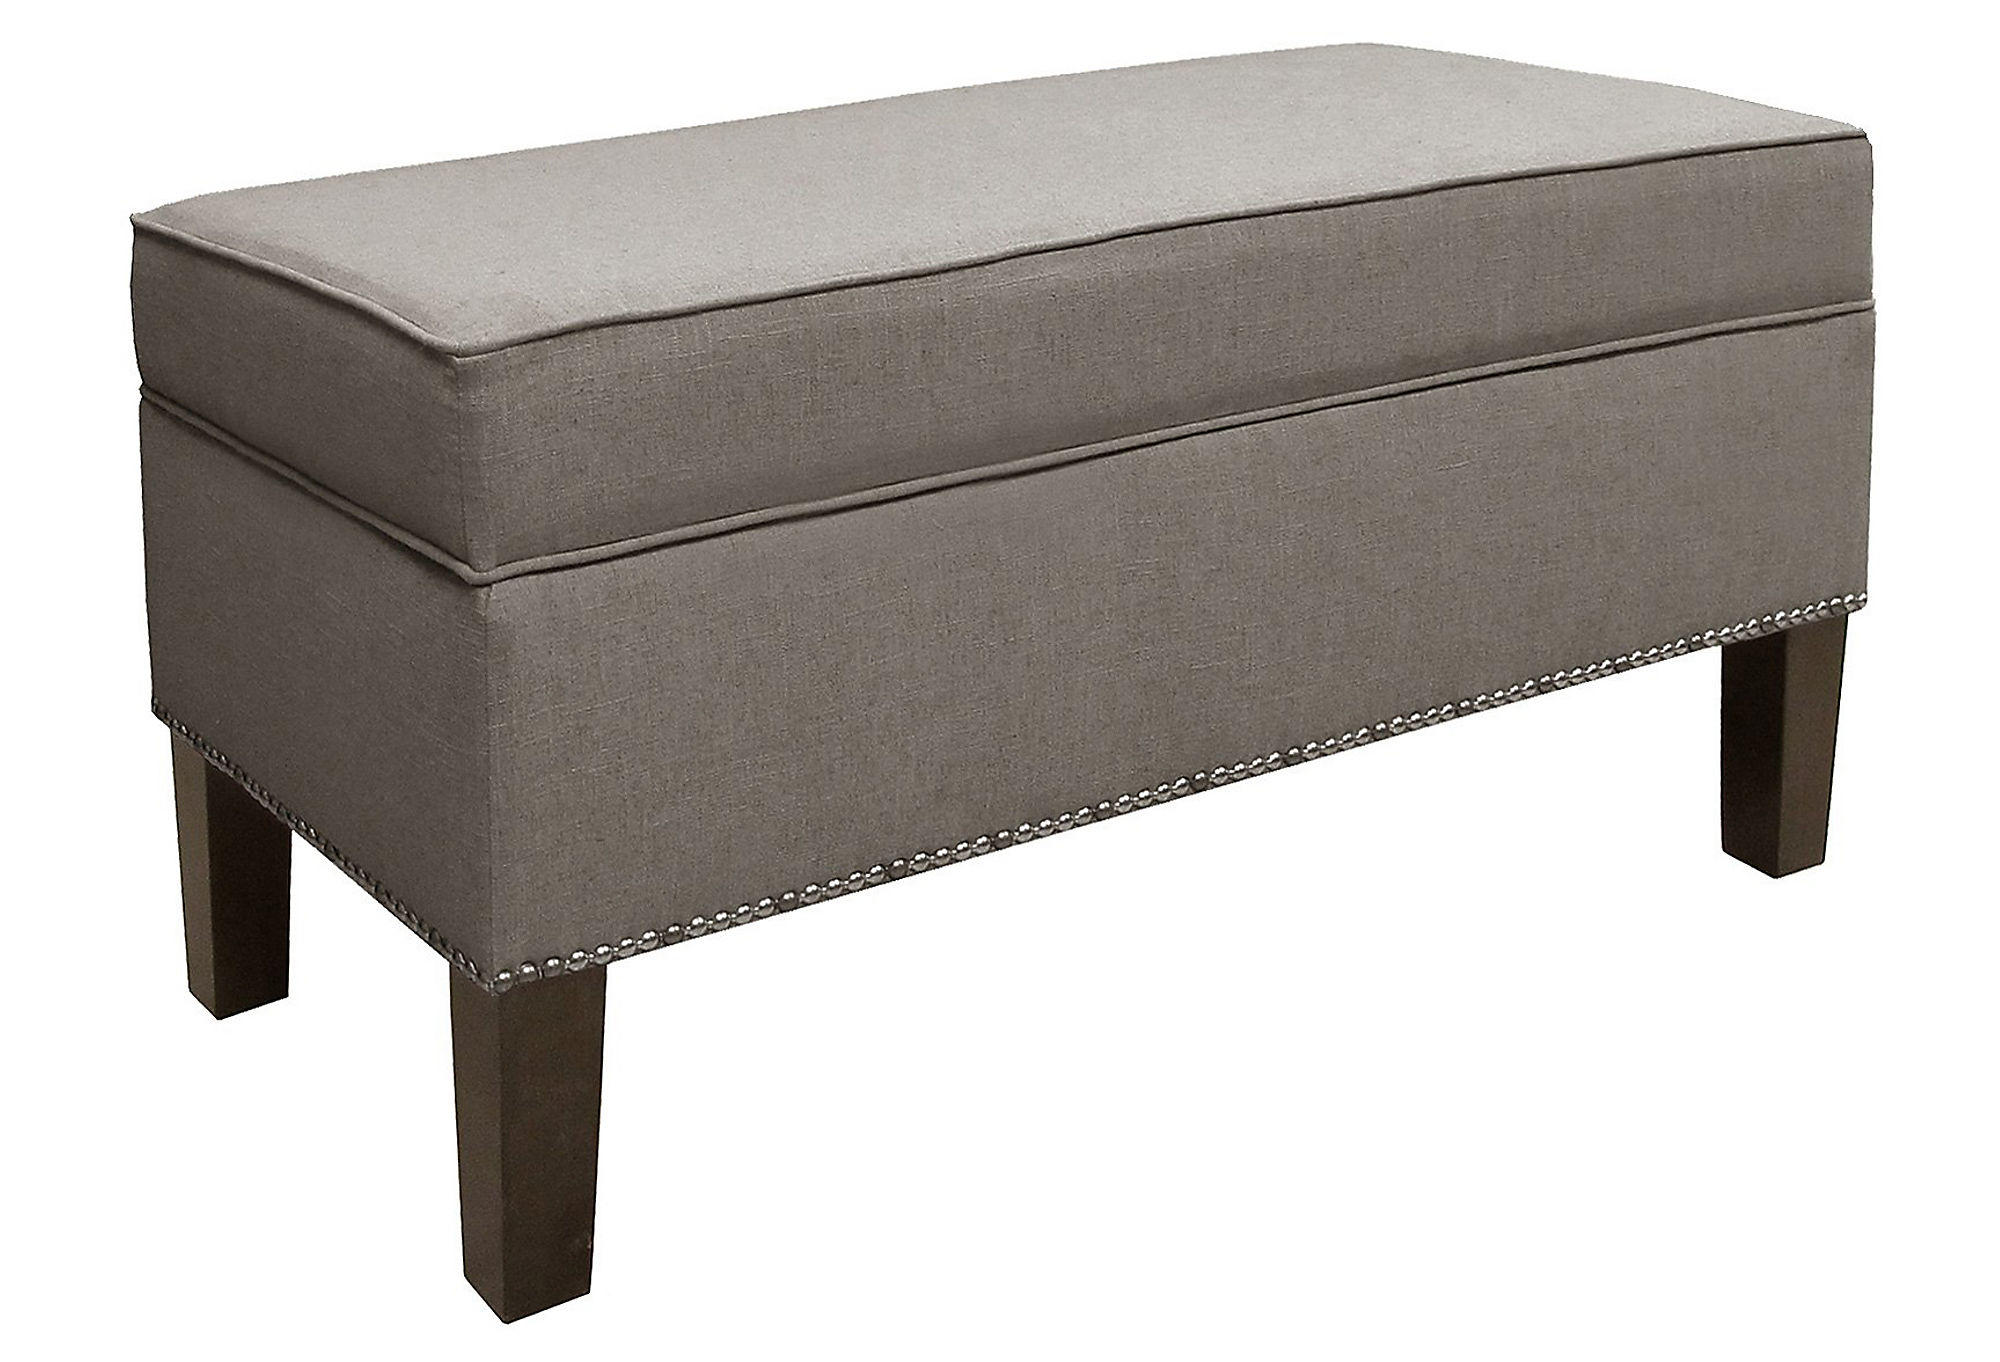 Dunne button storage bench gray bedroom from one kings lane Gray storage bench